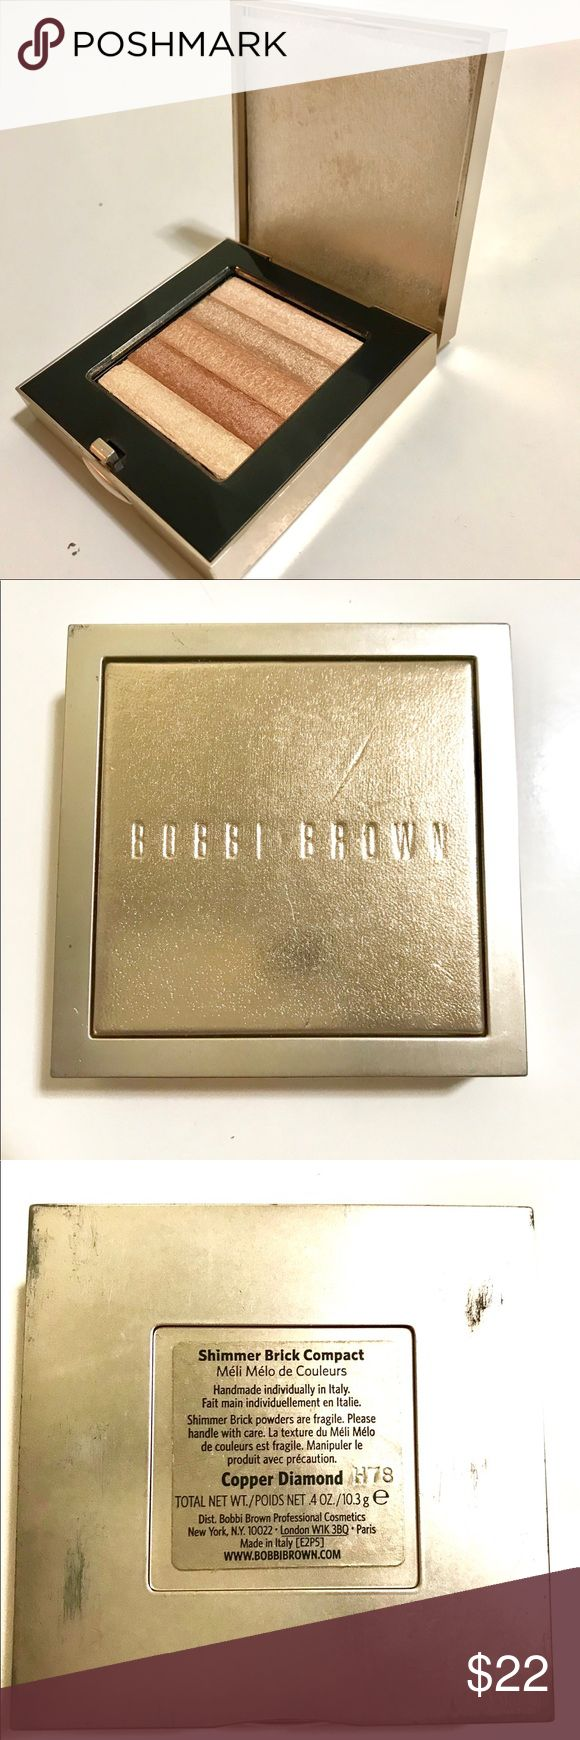 Bobbi Brown Shimmer Brick - Copper Diamond Barely used! A few scratches on the outside packaging but makeup is all in tact. Retail price $48. Bobbi Brown Makeup